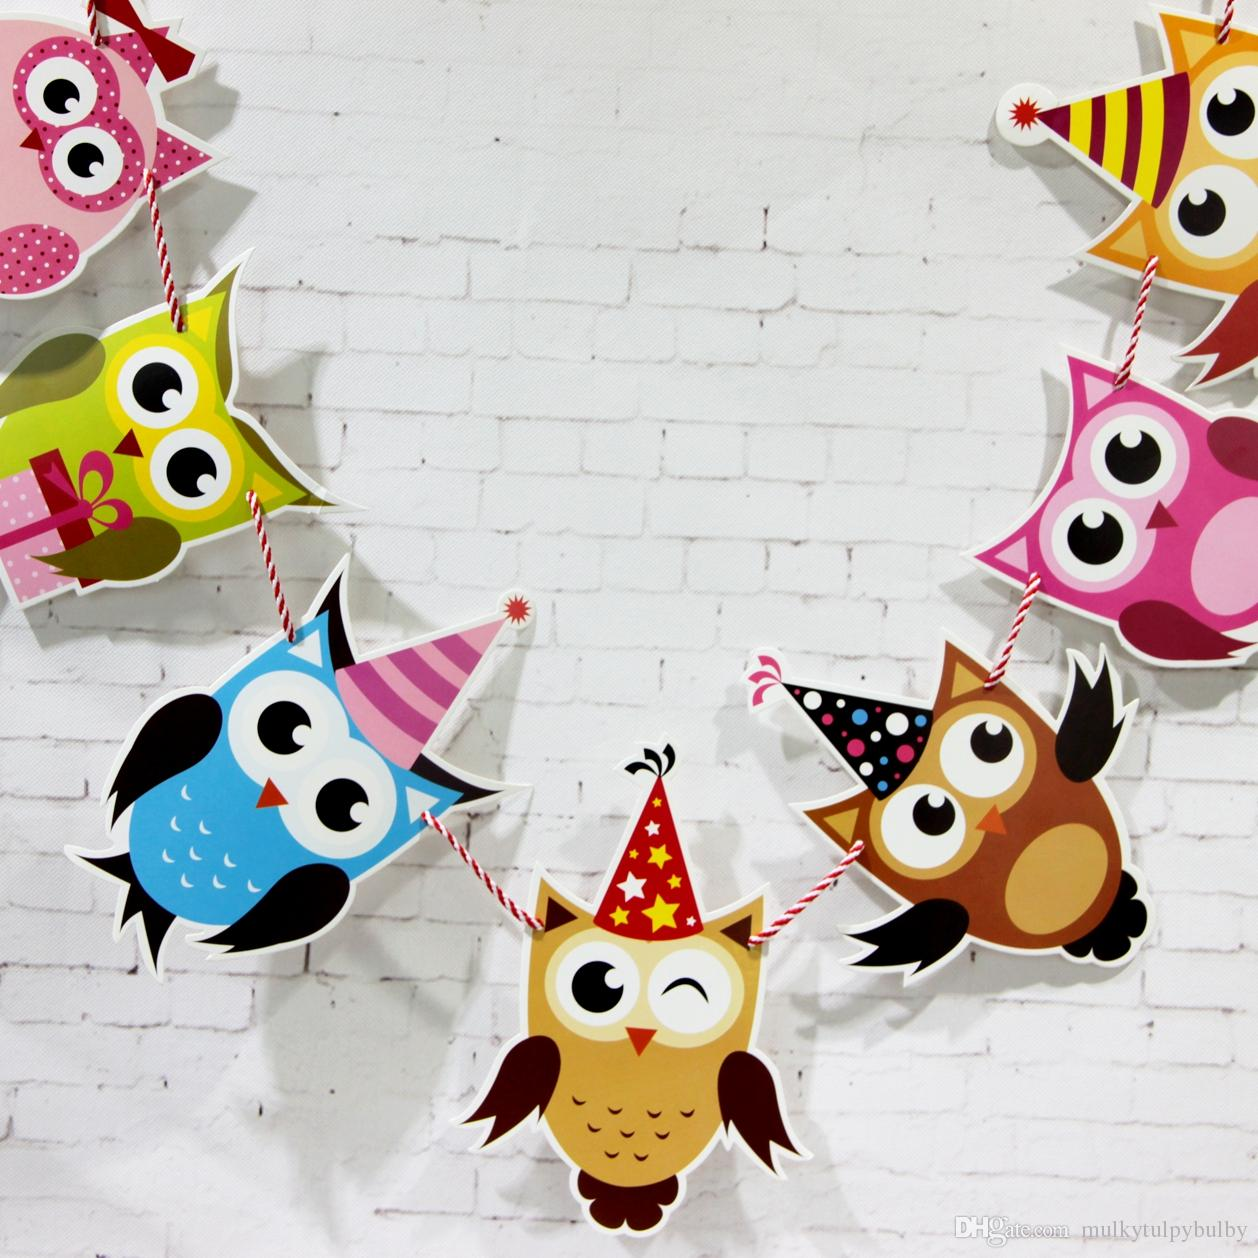 Owl Bedroom Accessories Owl Decorations For Baby Nursery Online Owl Decorations For Baby